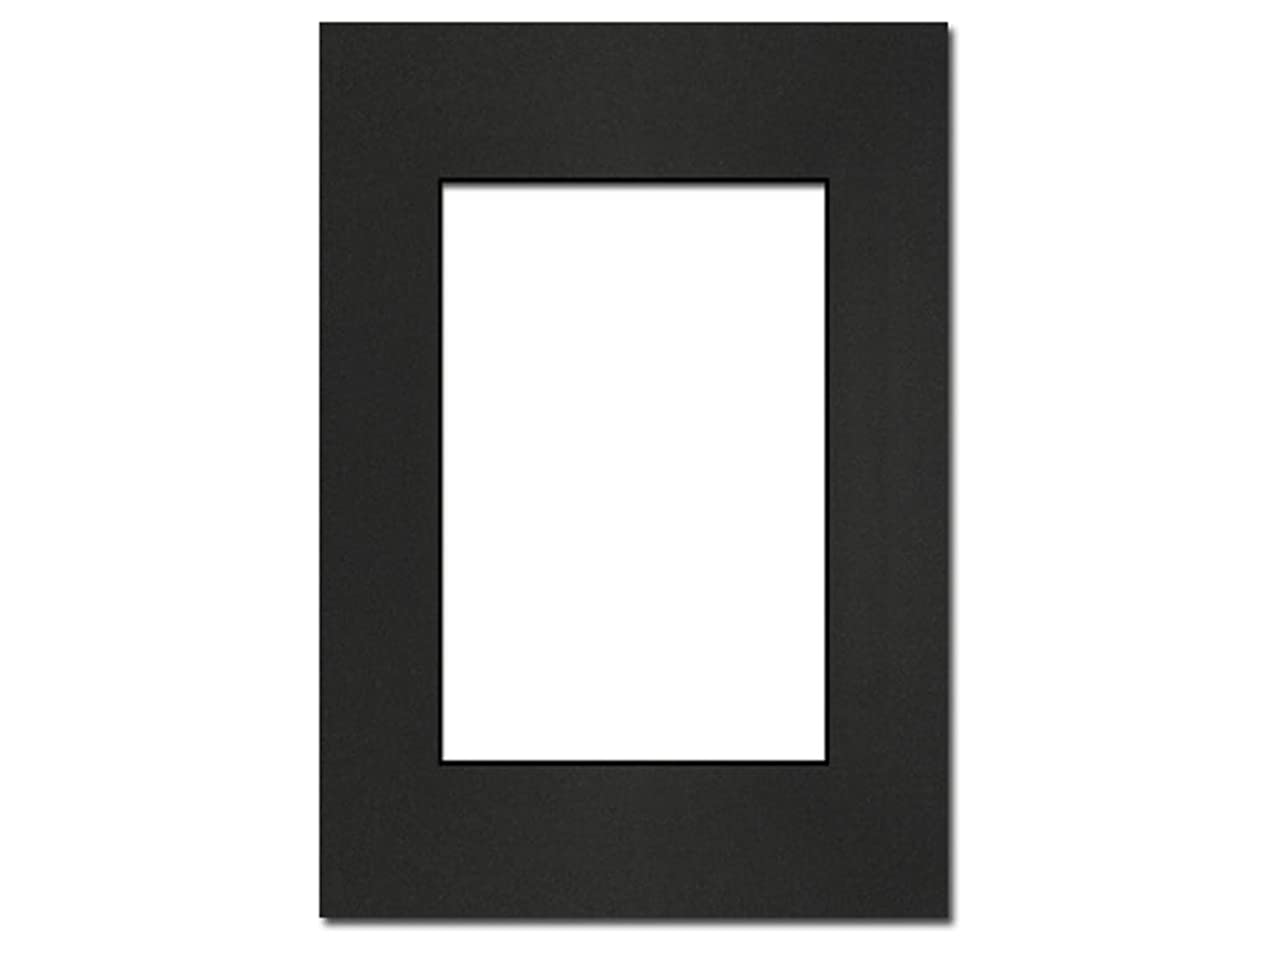 PA Framing, Photo Mat Board, 5 x 7 inches Frame for 3.5 x 5 inches Photo Art Size - Black Core/Black